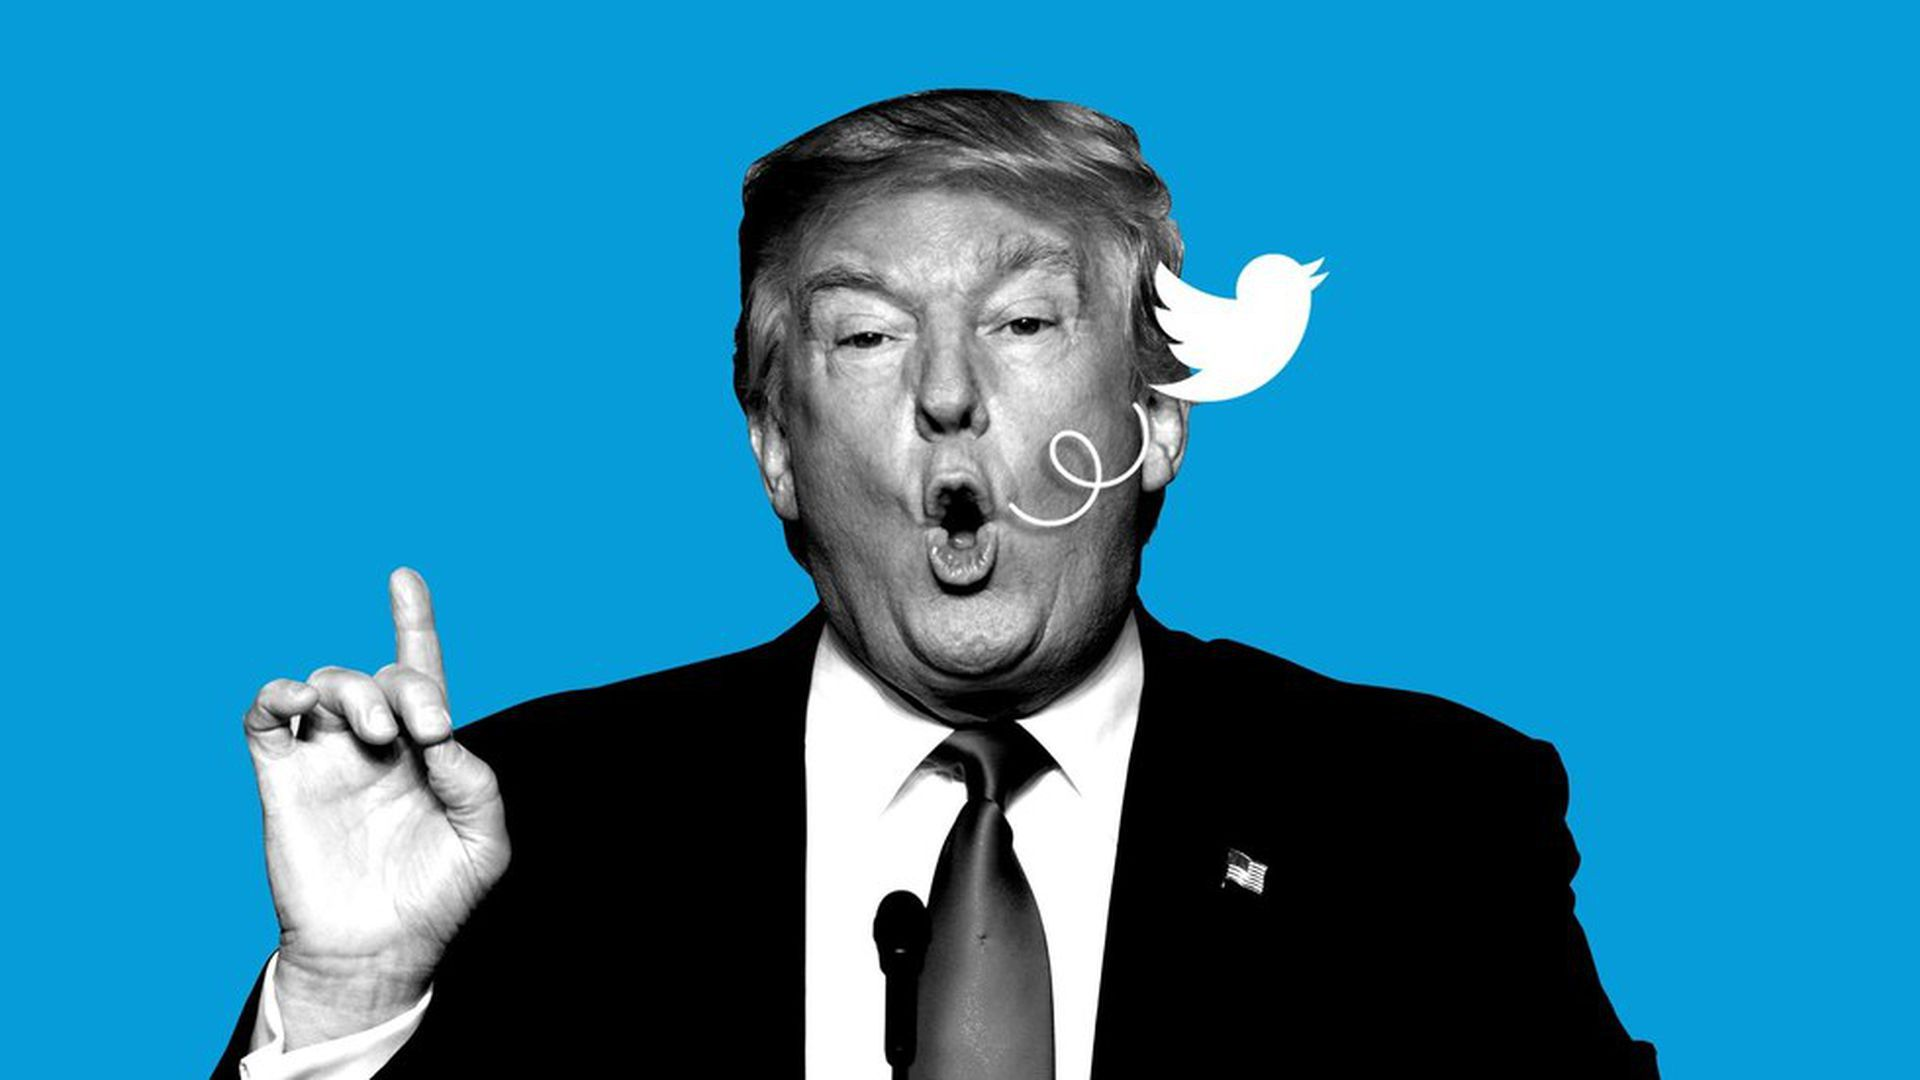 Second Circuit Rules That Failing To >> Court Ruling Could Foreshadow New Twitter Rules For Trump Axios